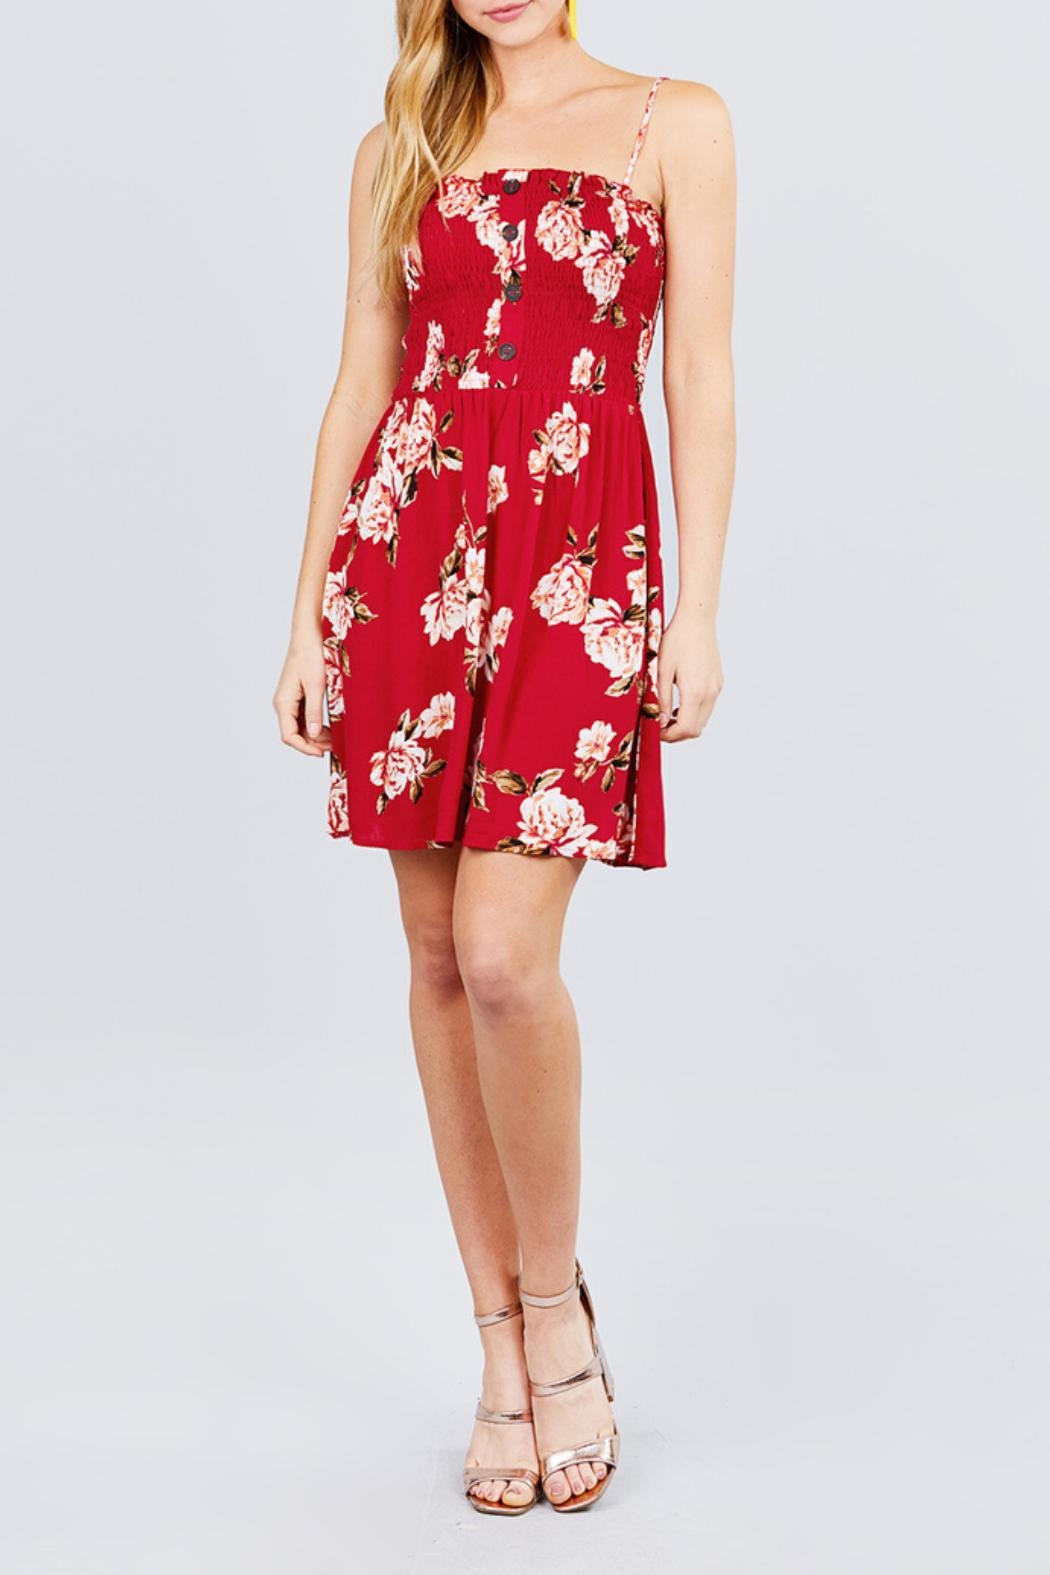 Active USA Red Floral Dress - Front Full Image